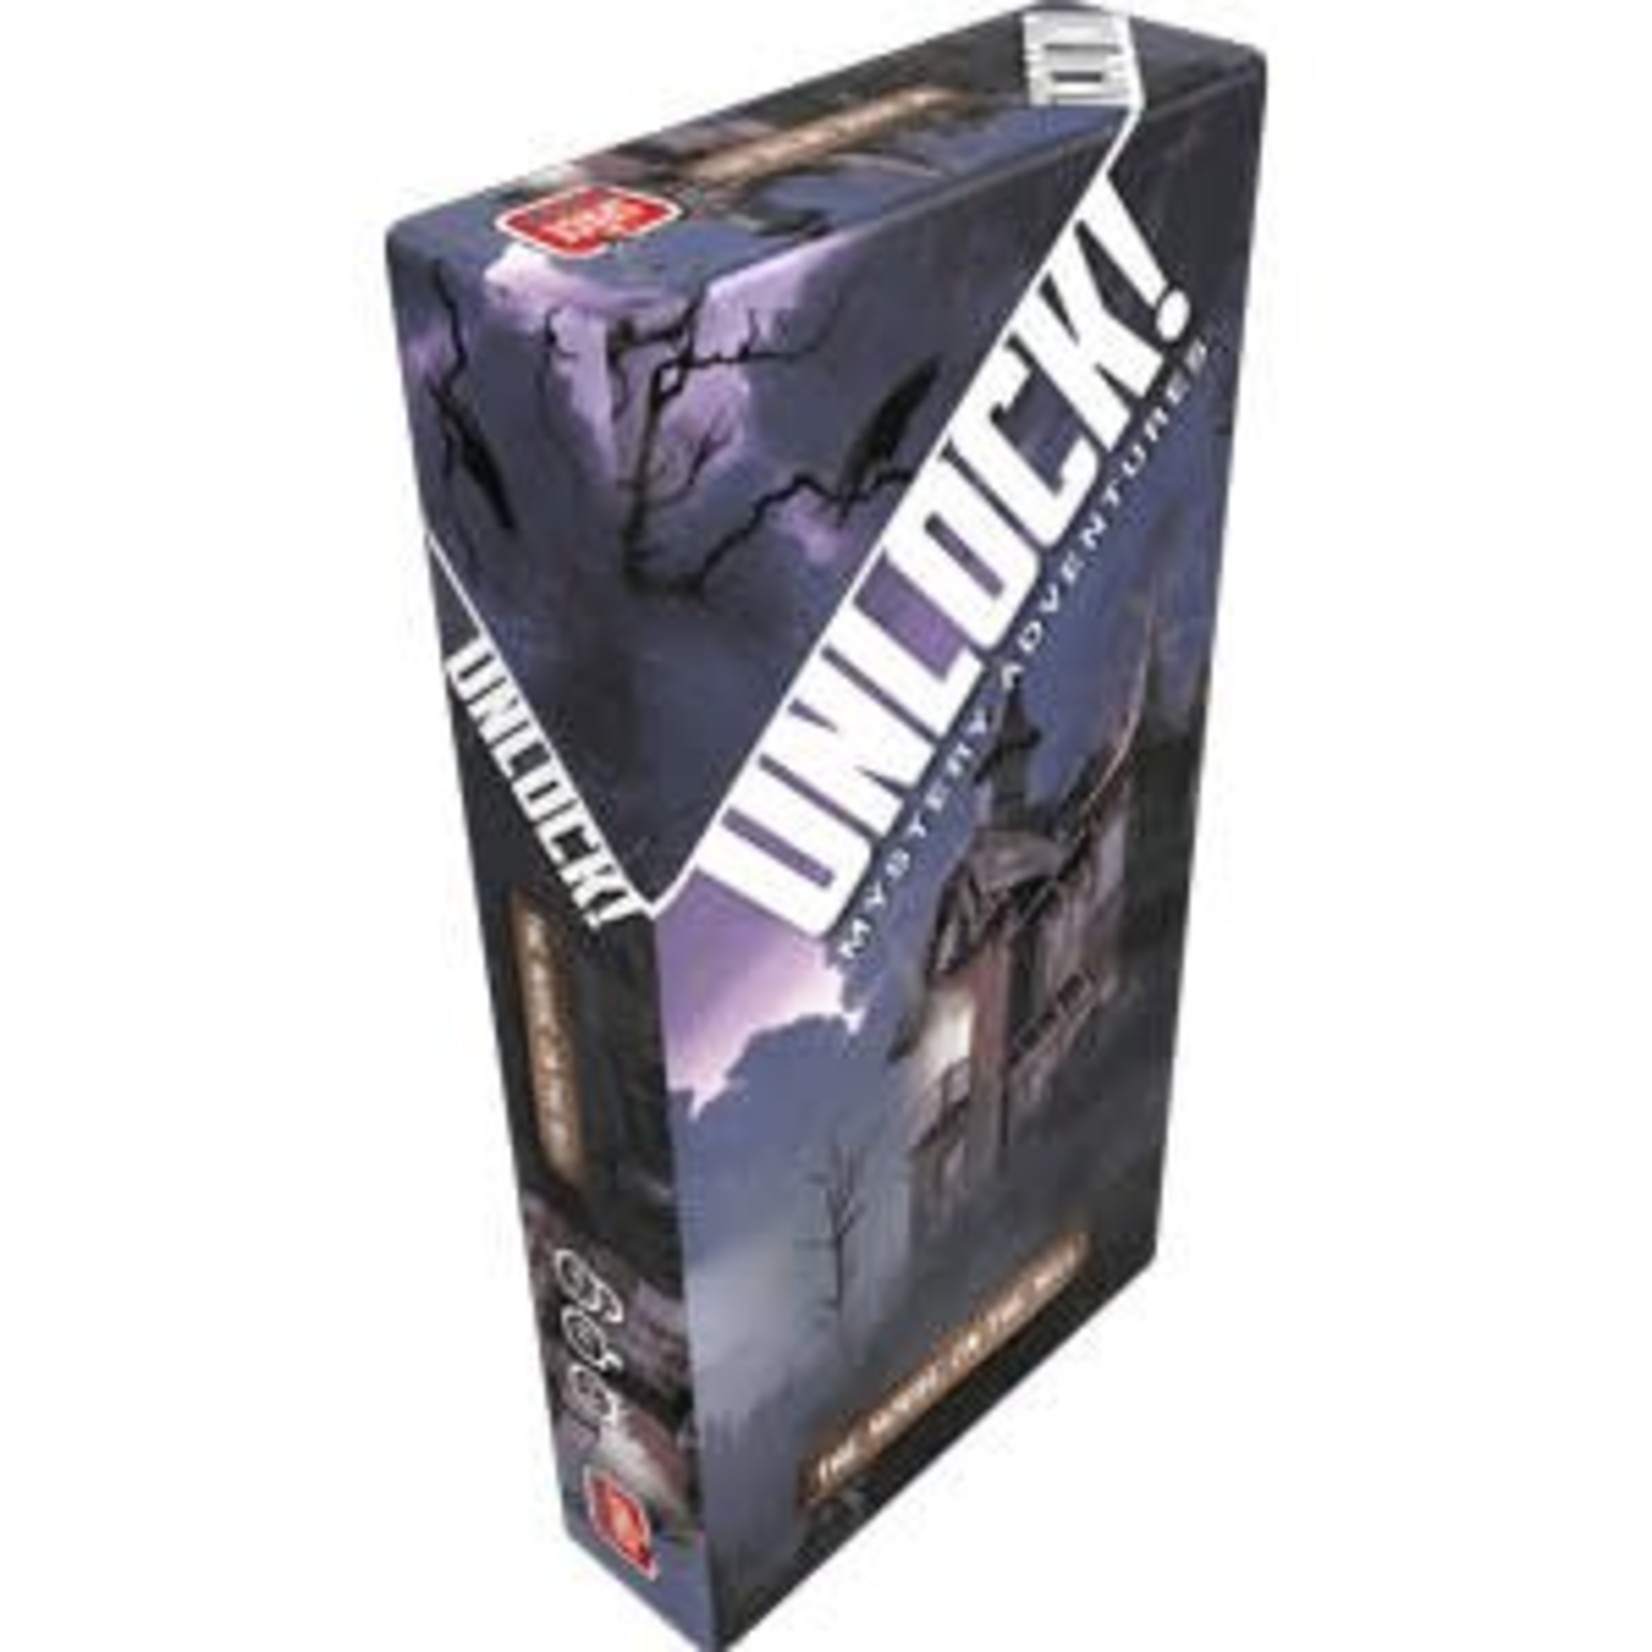 Asmodee Editions Unlock! The House on the Hill